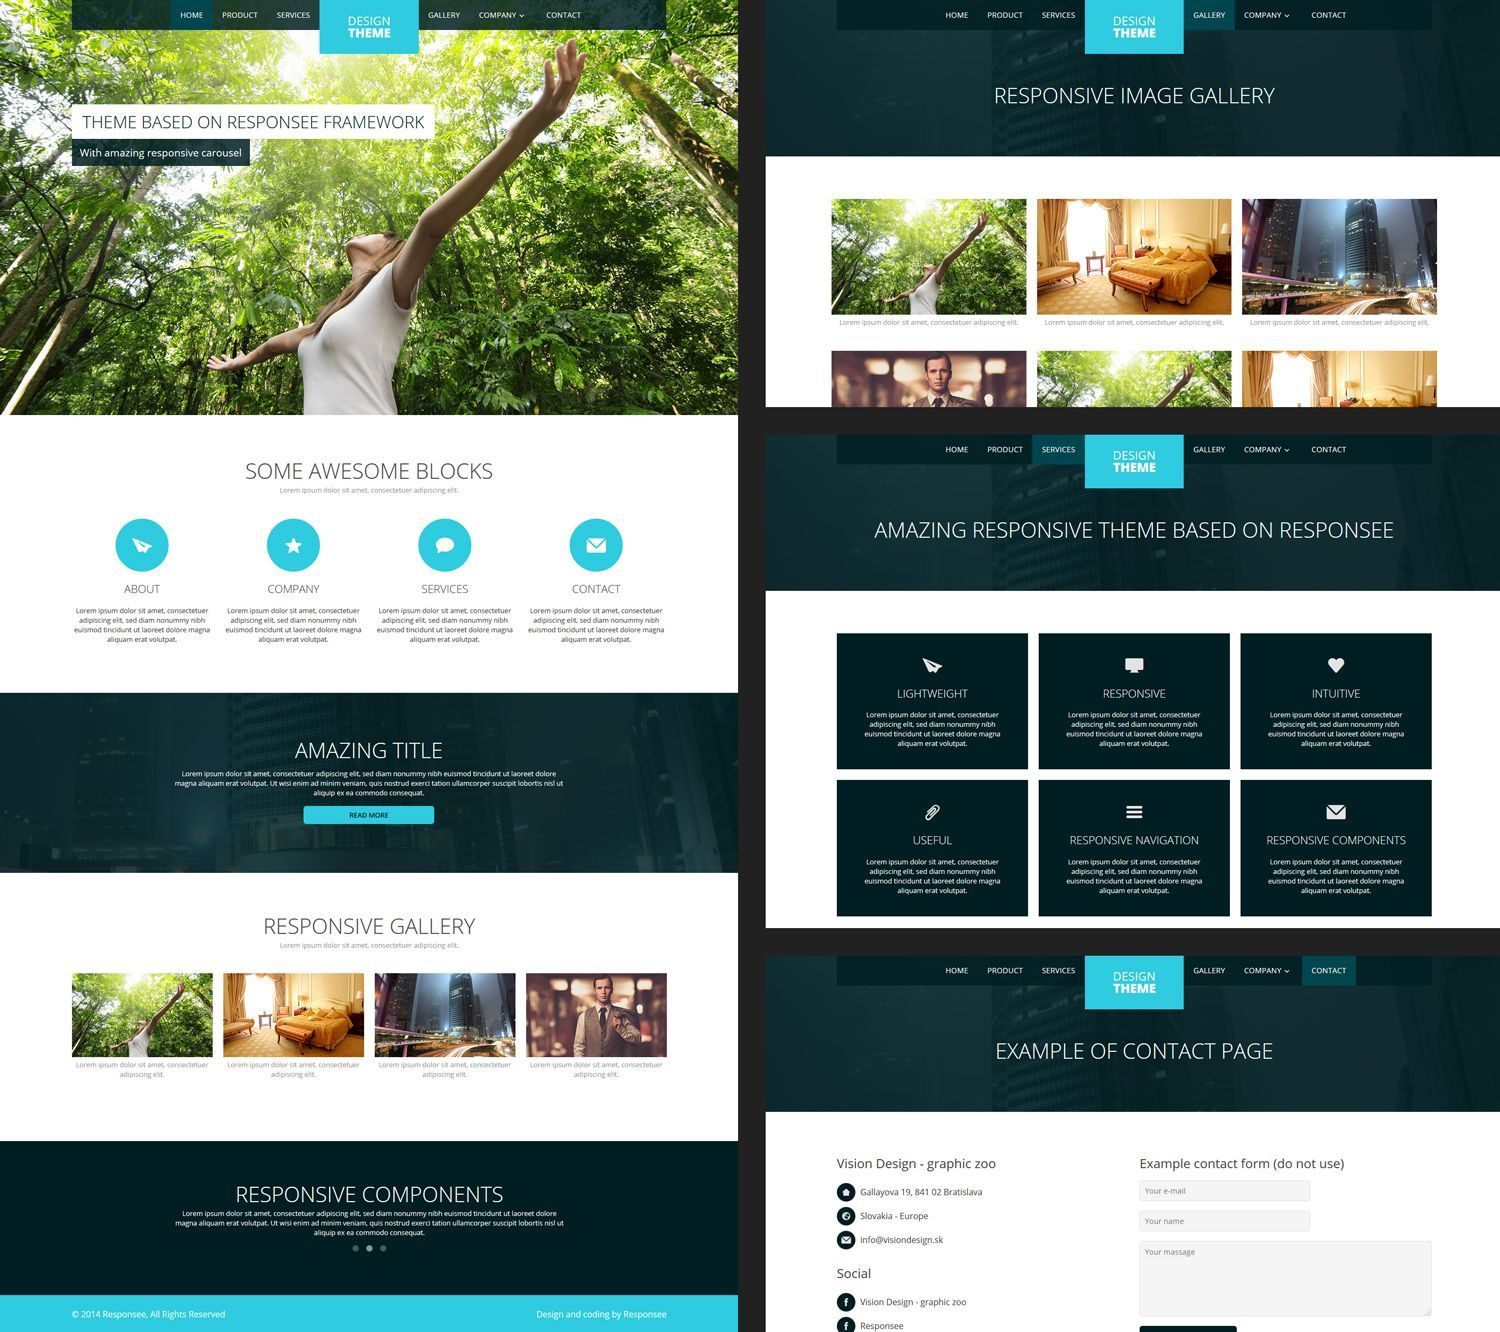 001 Archaicawful Website Design Template Free Idea  Asp.net Web Download PsdFull